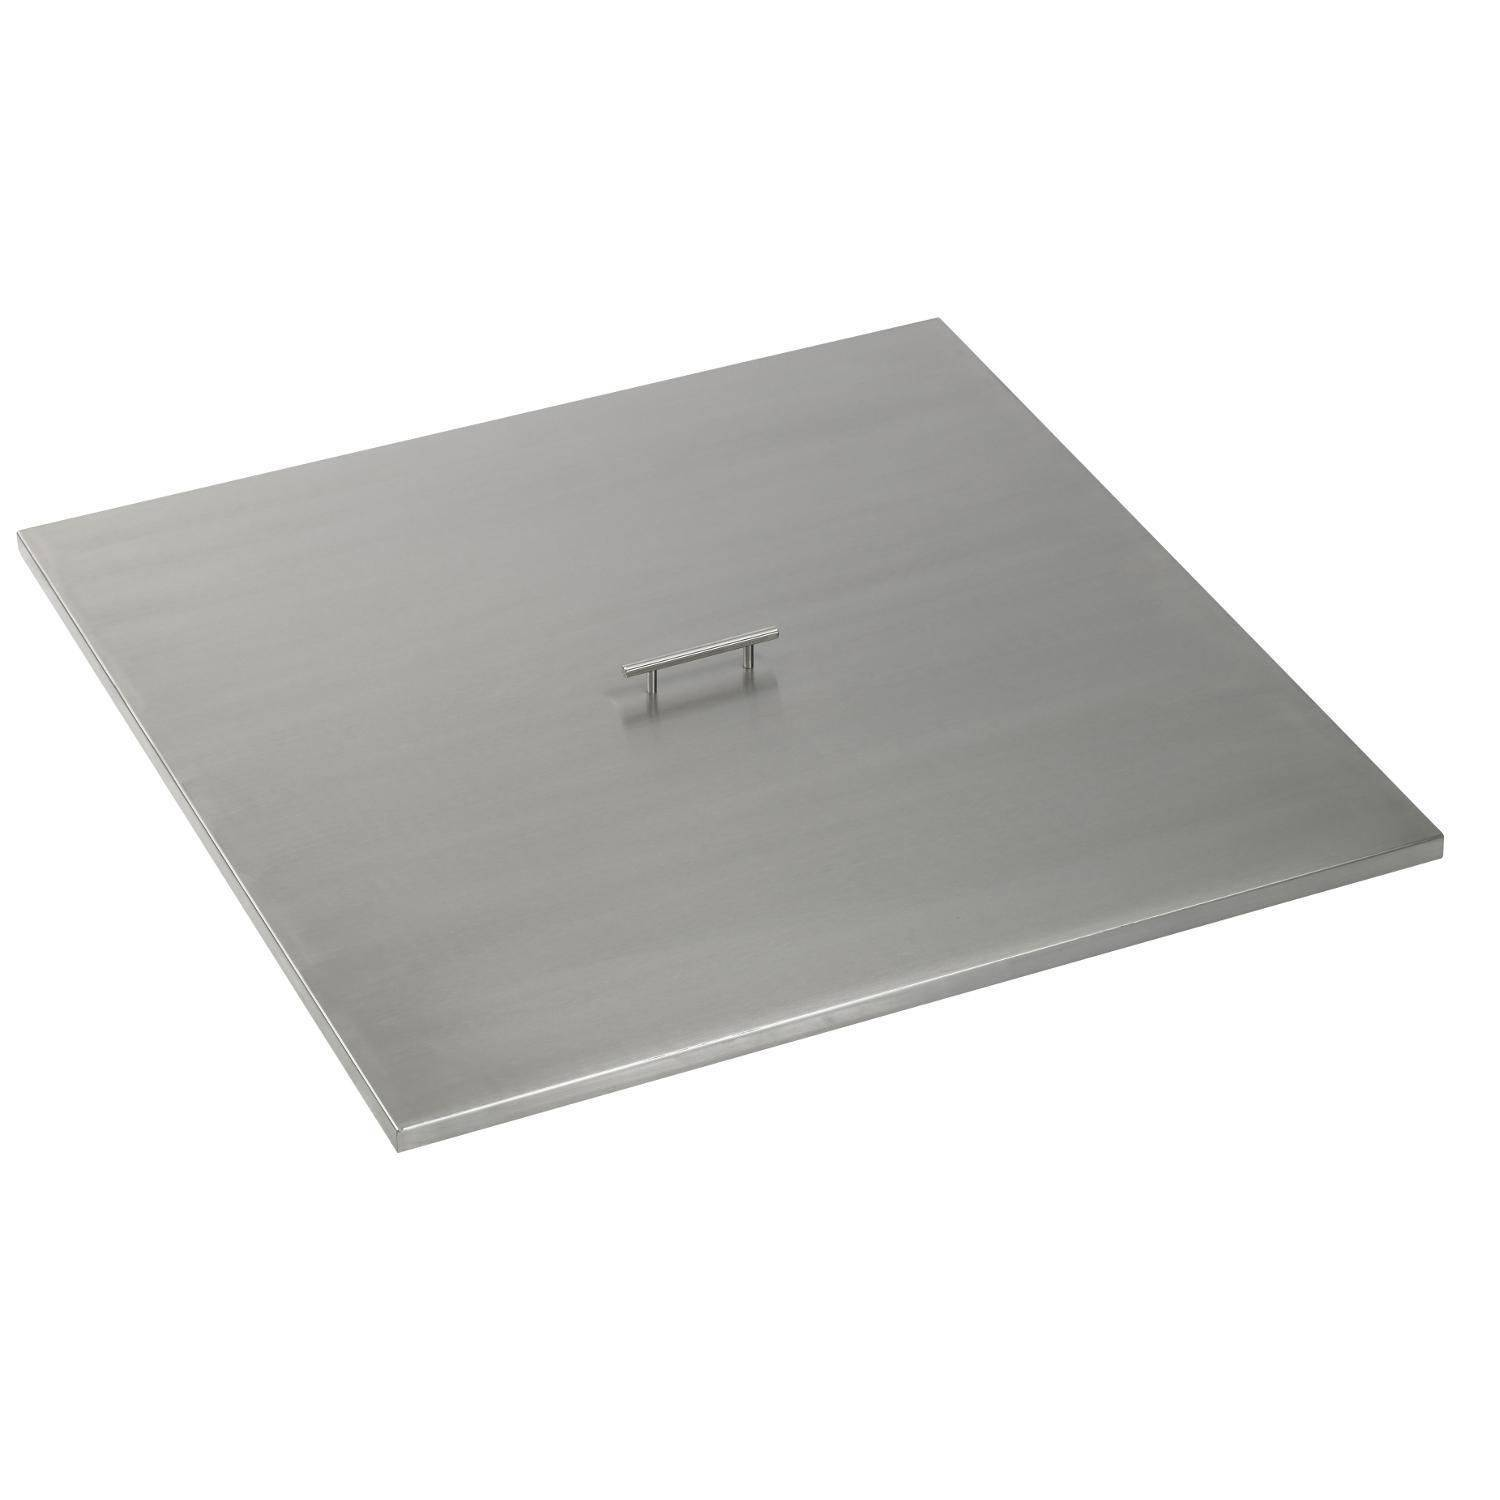 """28"""" x 28"""" Square Stainless Steel Fire Pit Cover -The Outdoor Plus"""